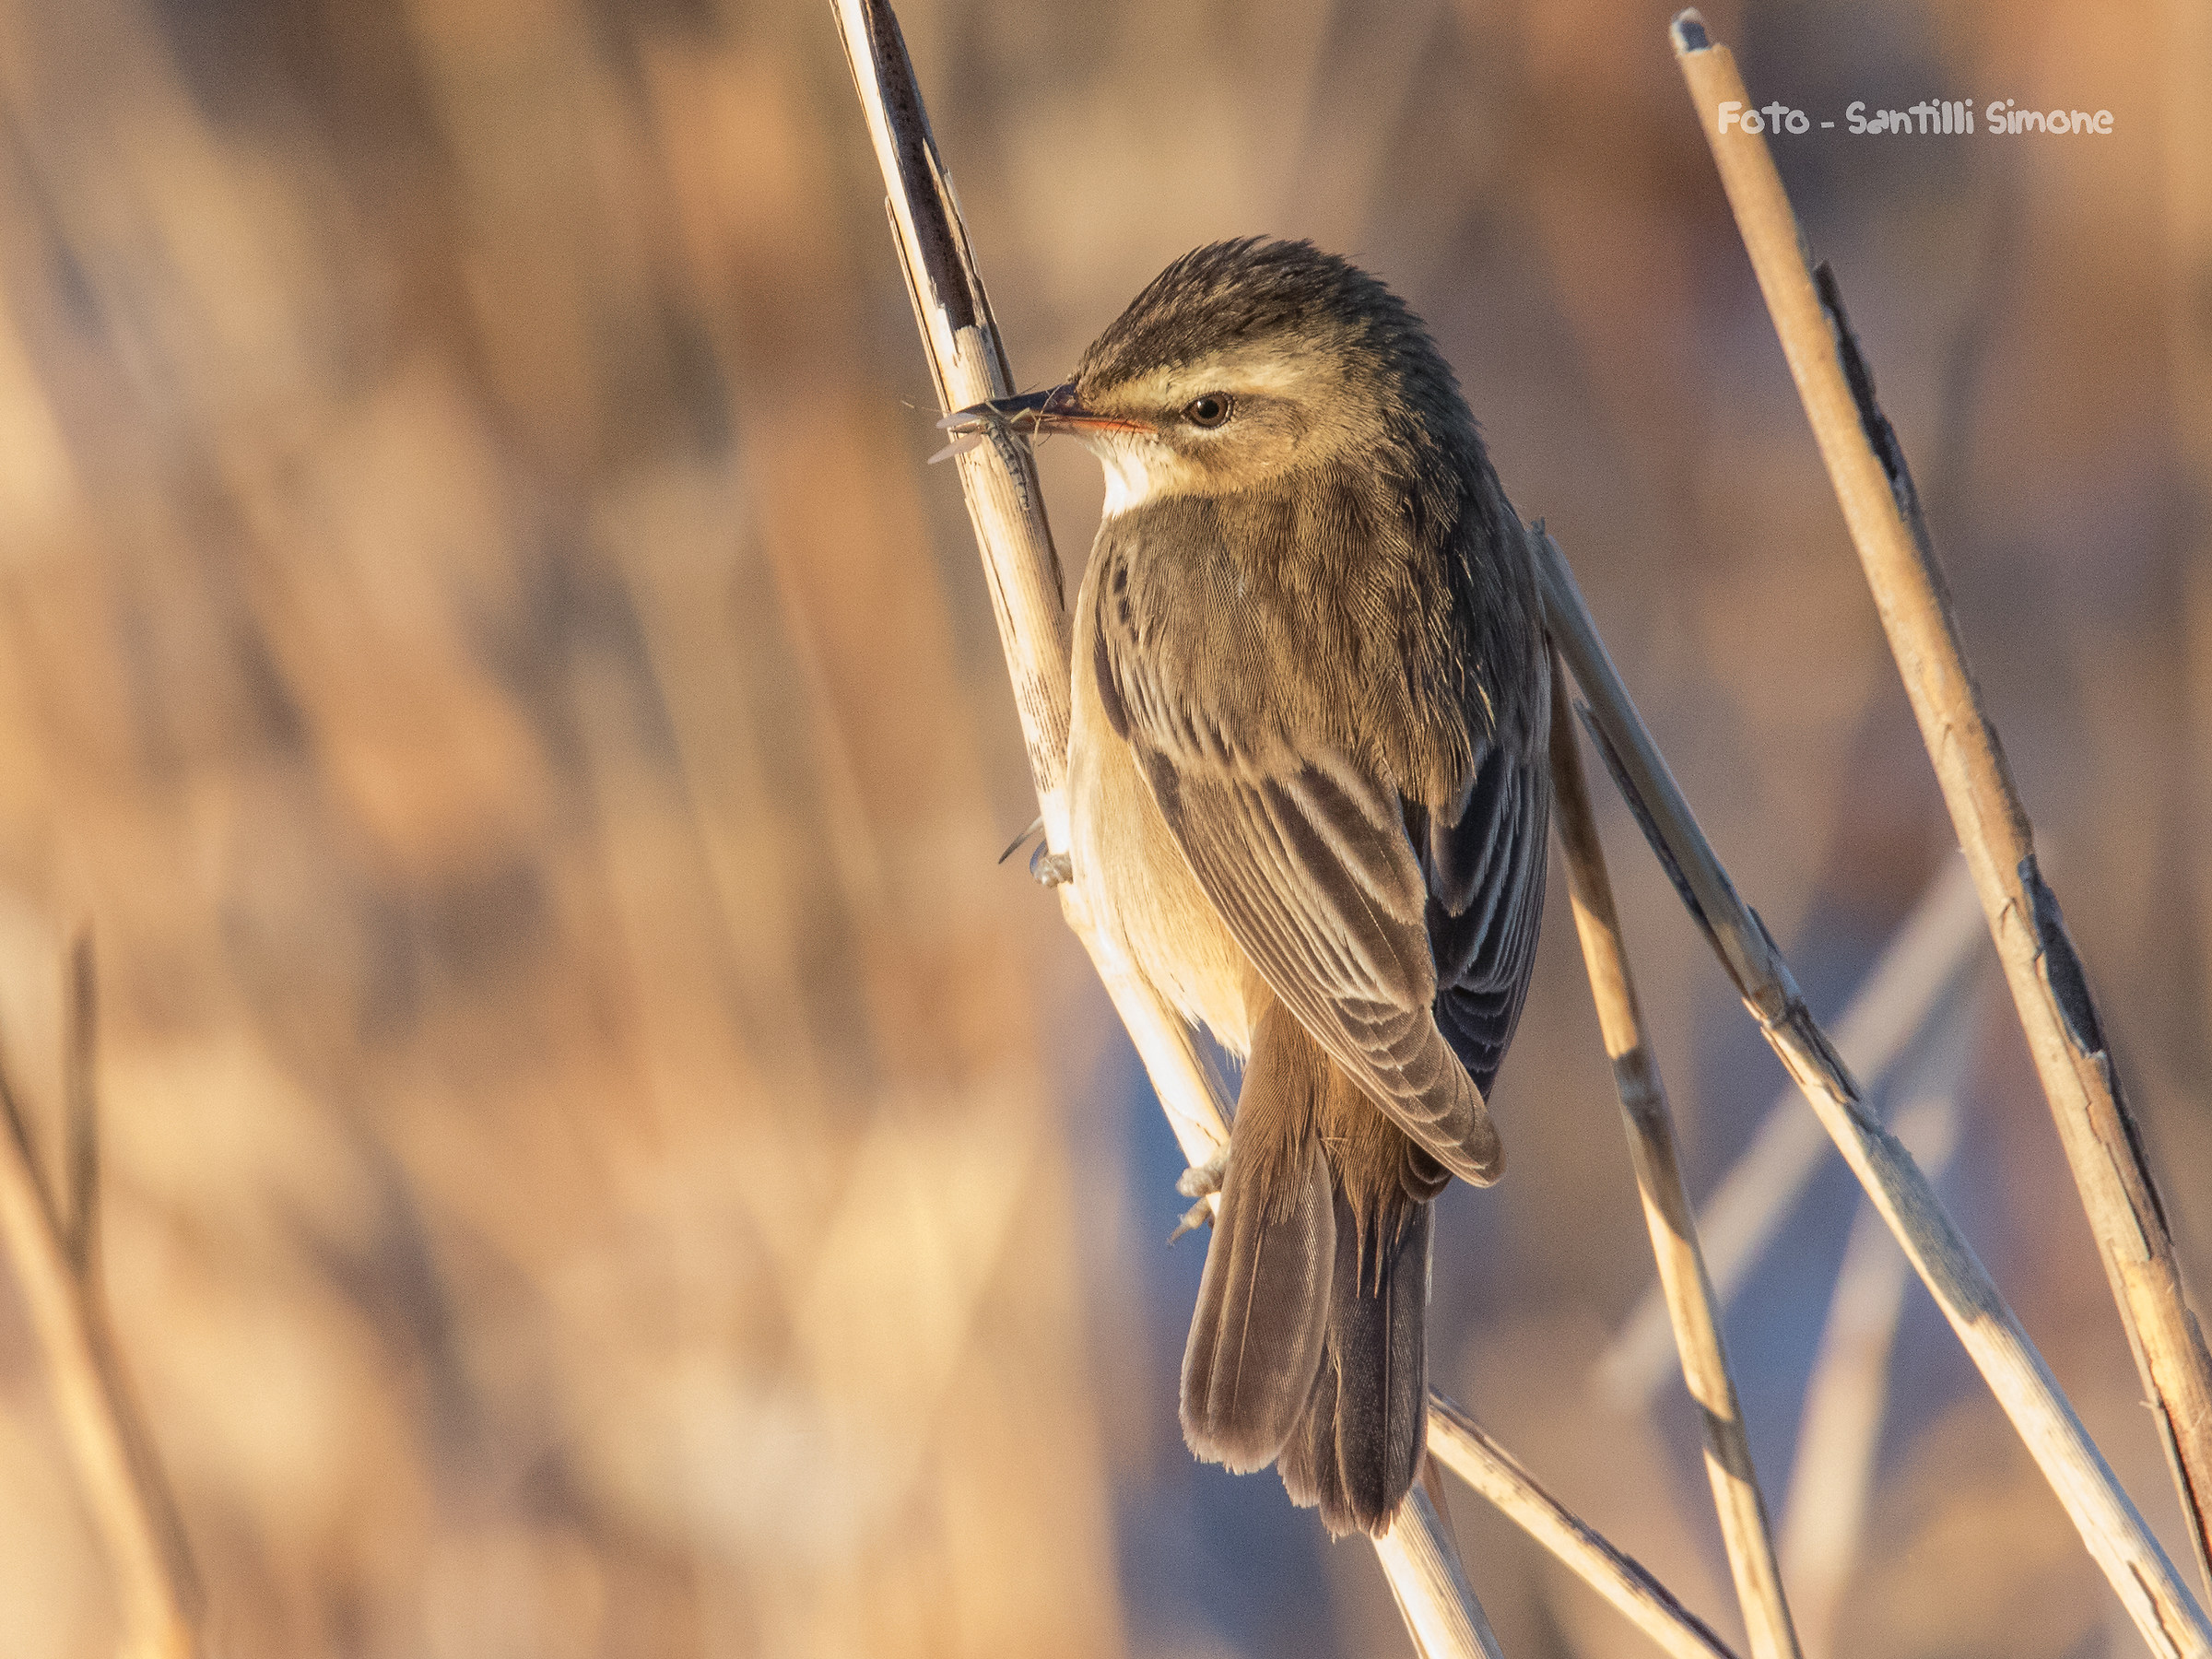 warm lights in the reeds ......